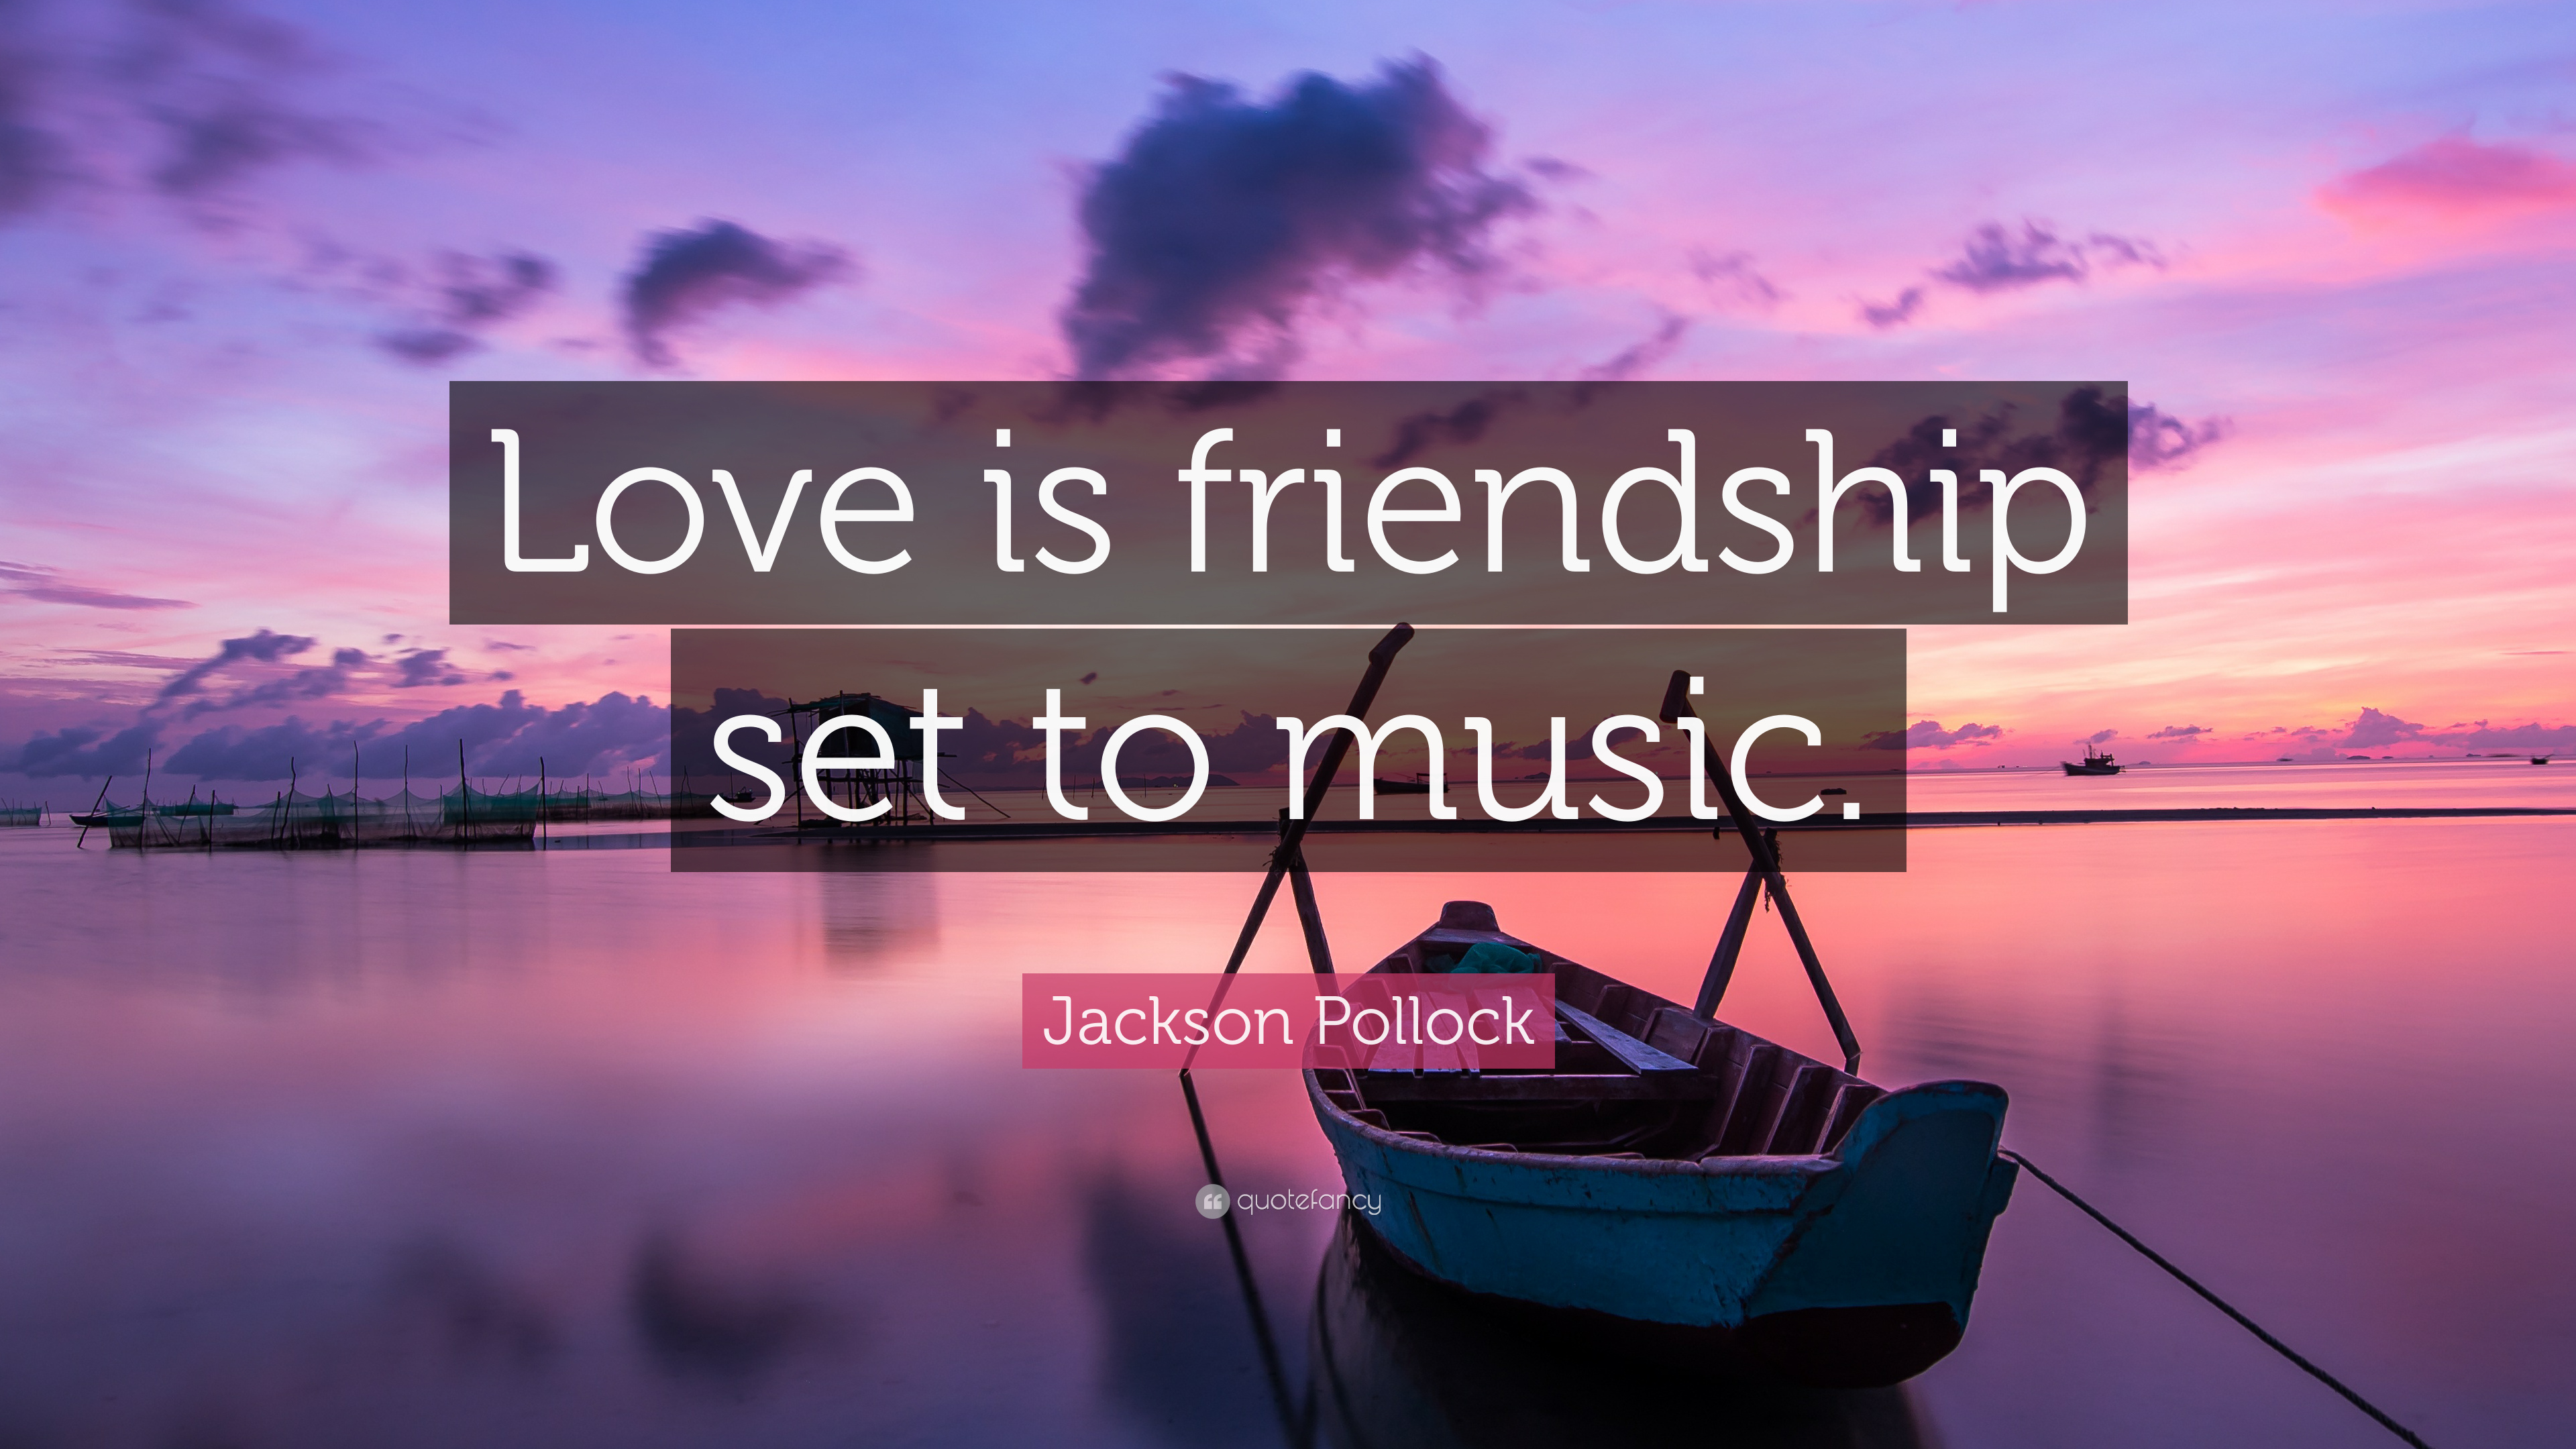 Love Music Quotes Quotes Love Music  Page 7  The Best Love Quotes